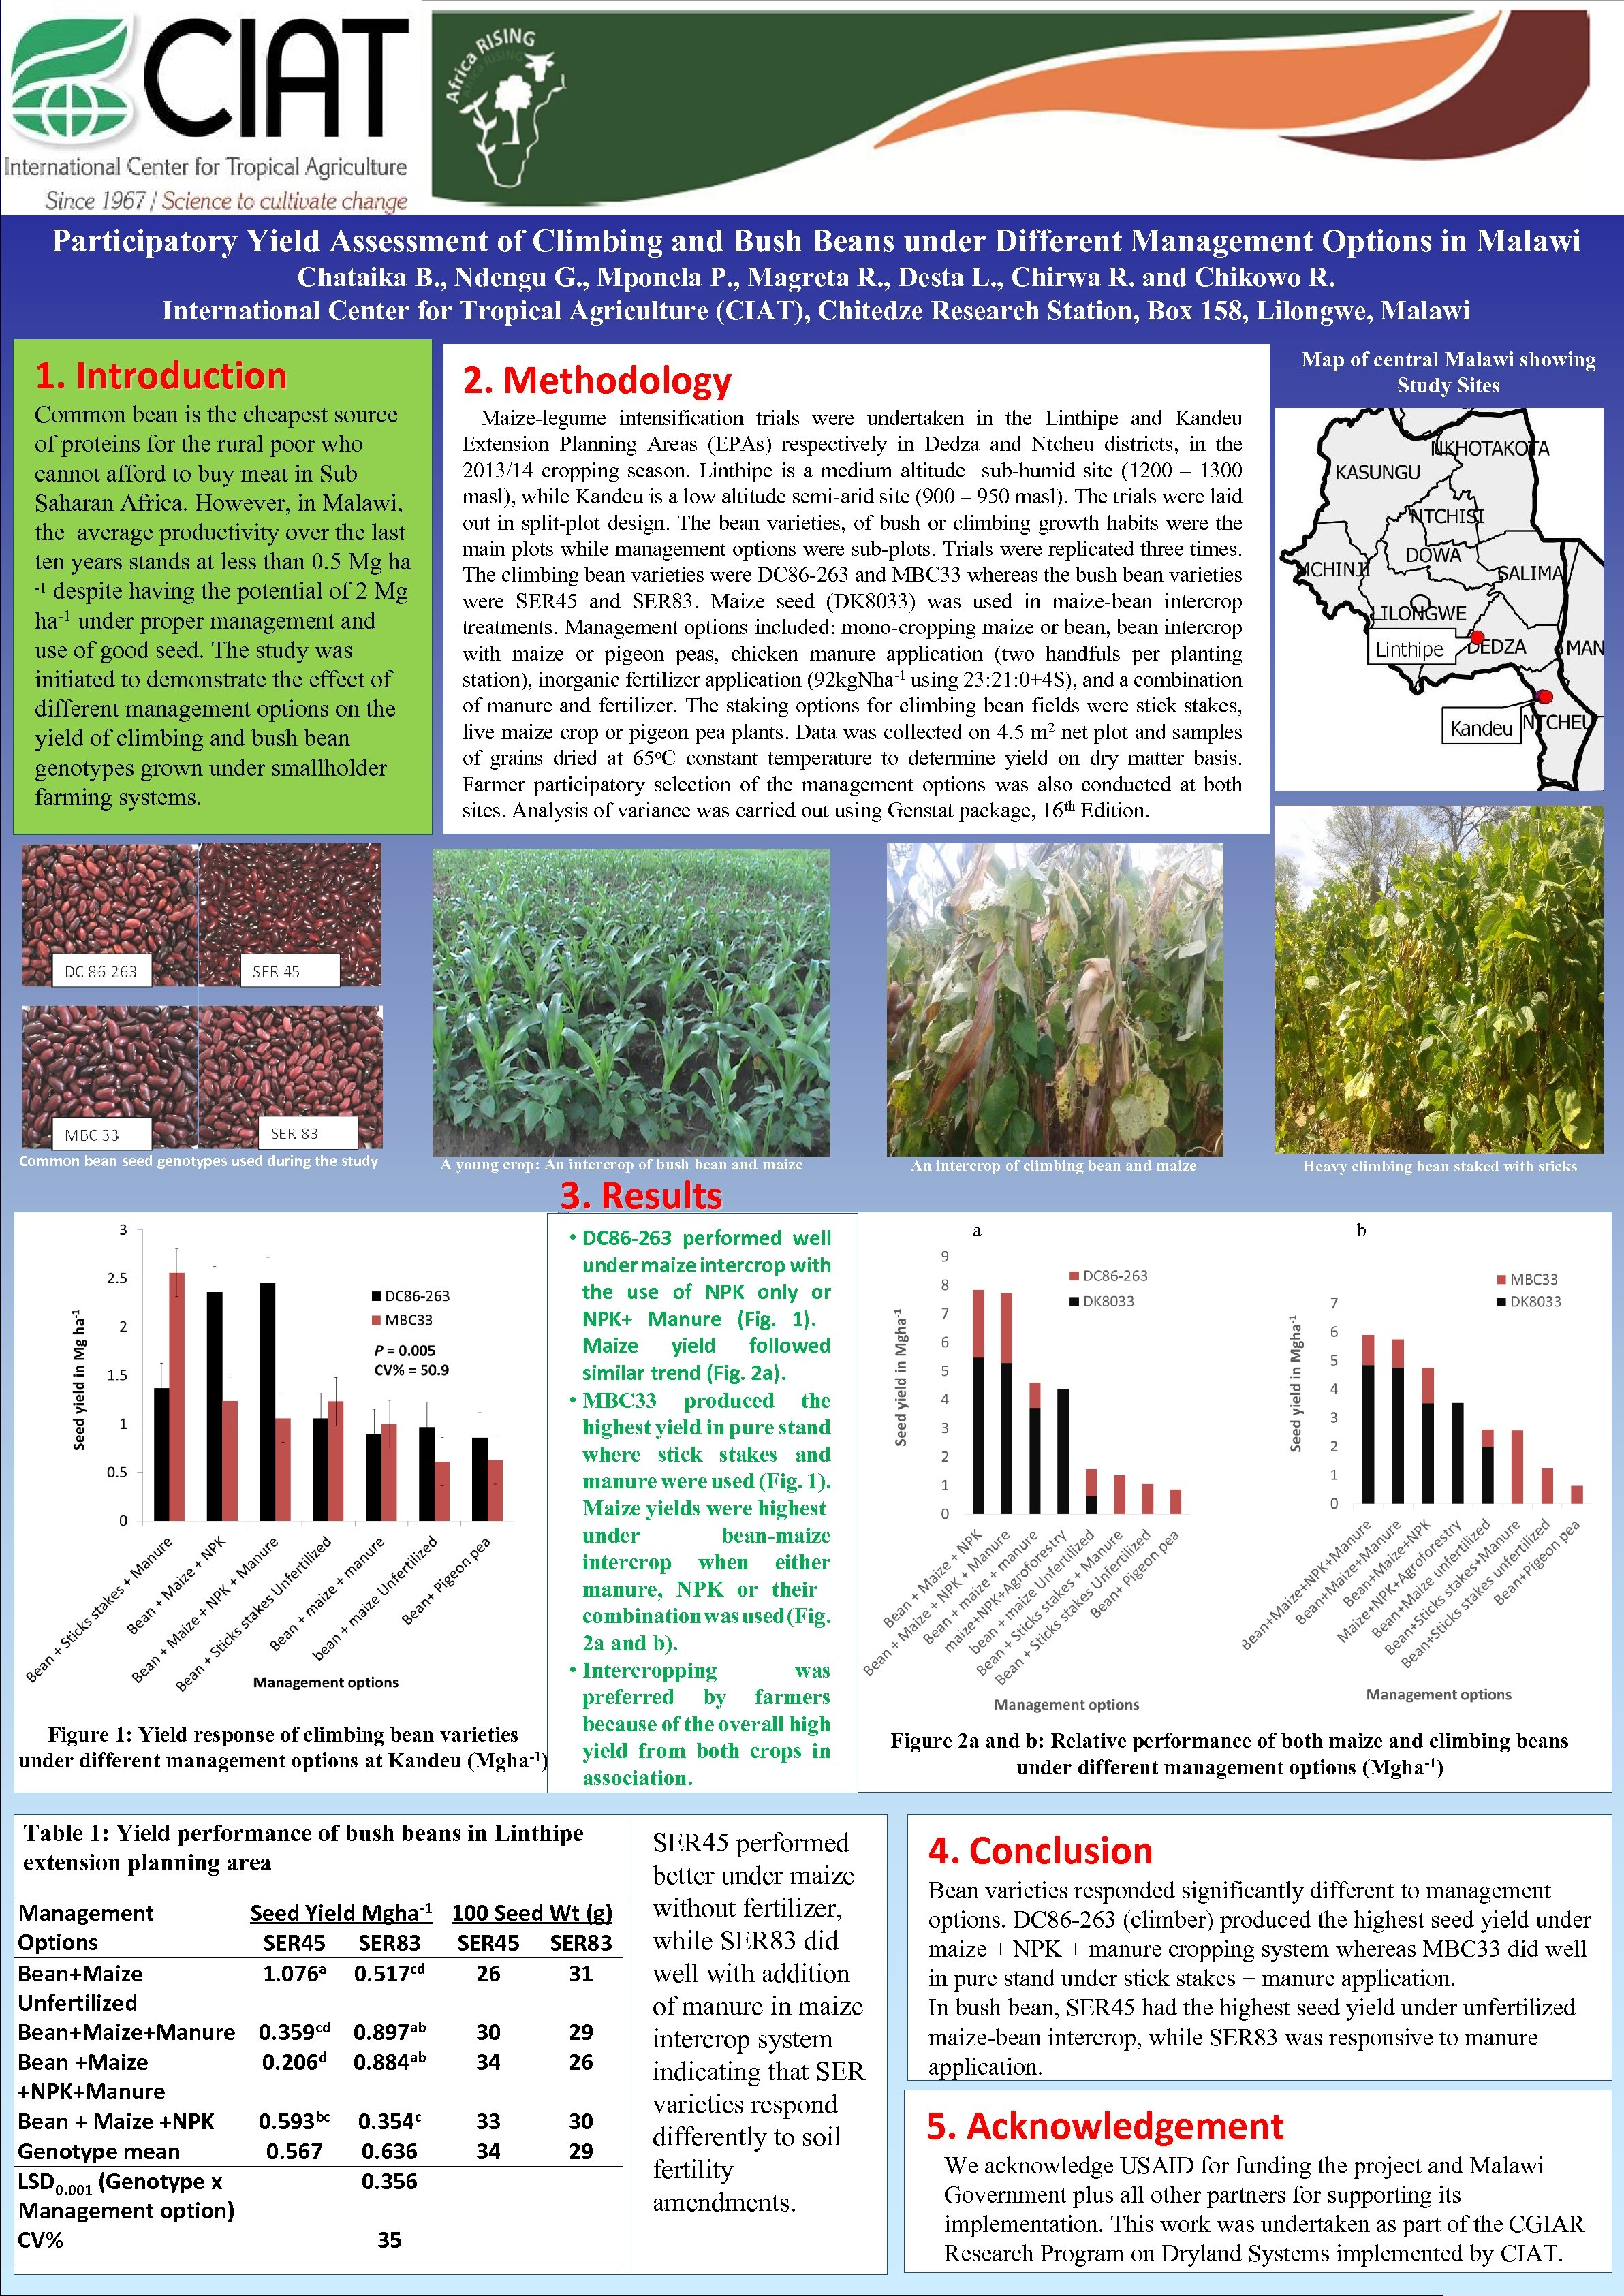 Participatory Yield Assessment of Climbing and Bush Beans under Different Management Options in Malawi